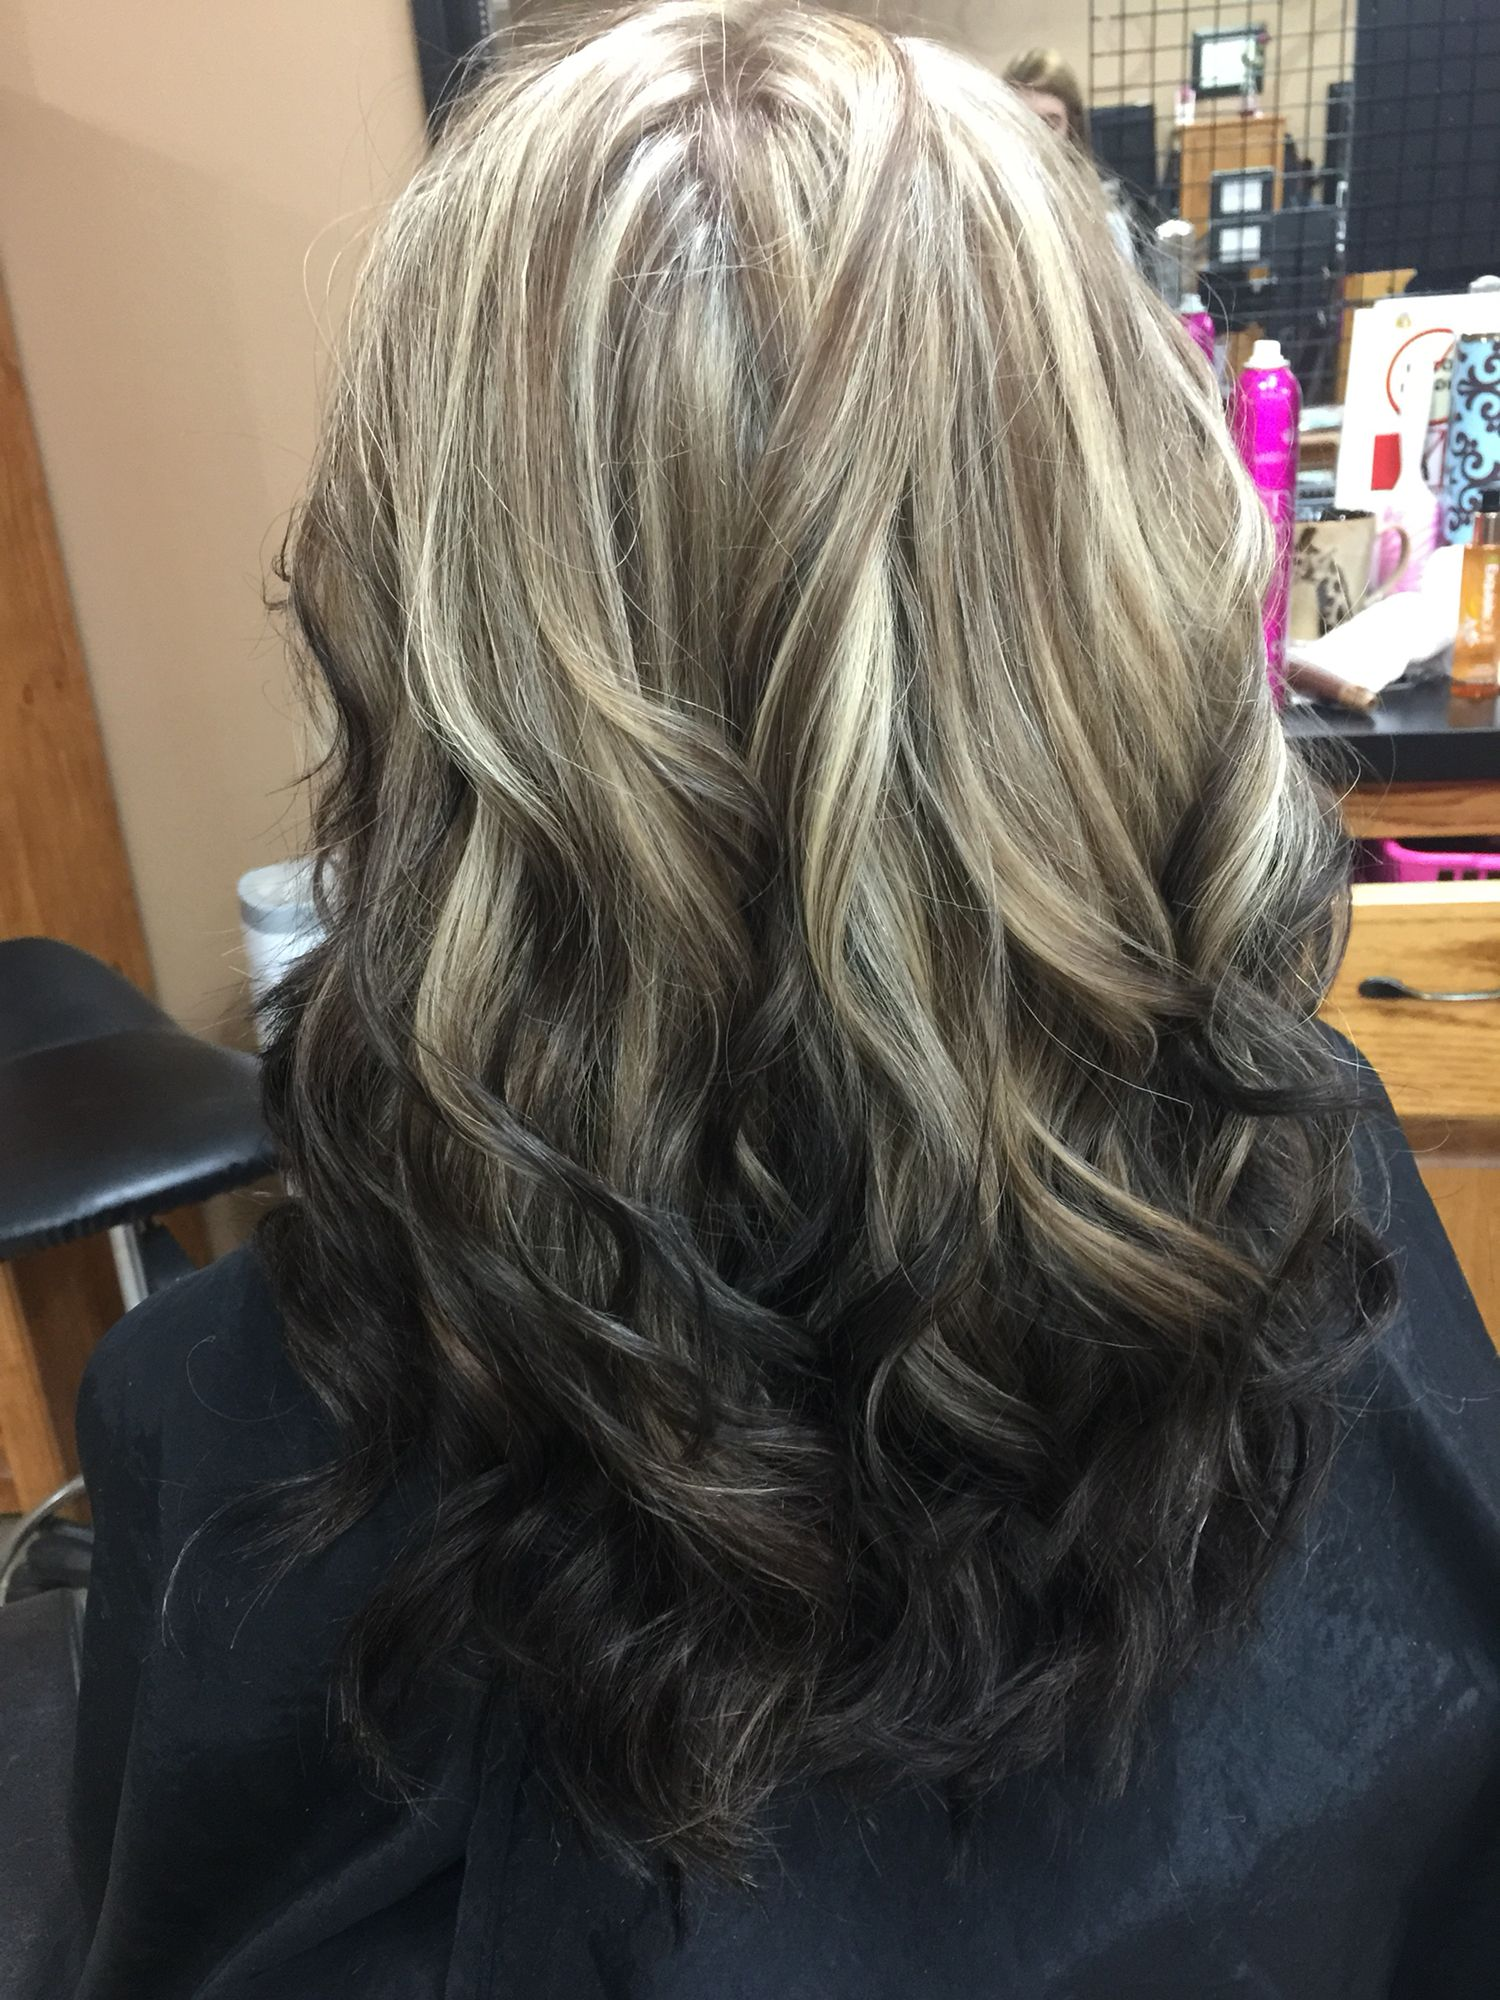 Gorgeous Reverse Blonde To Black Ombre Curled Hairstyles Grey Ombre Hair Reverse Ombre Hair Hair Styles